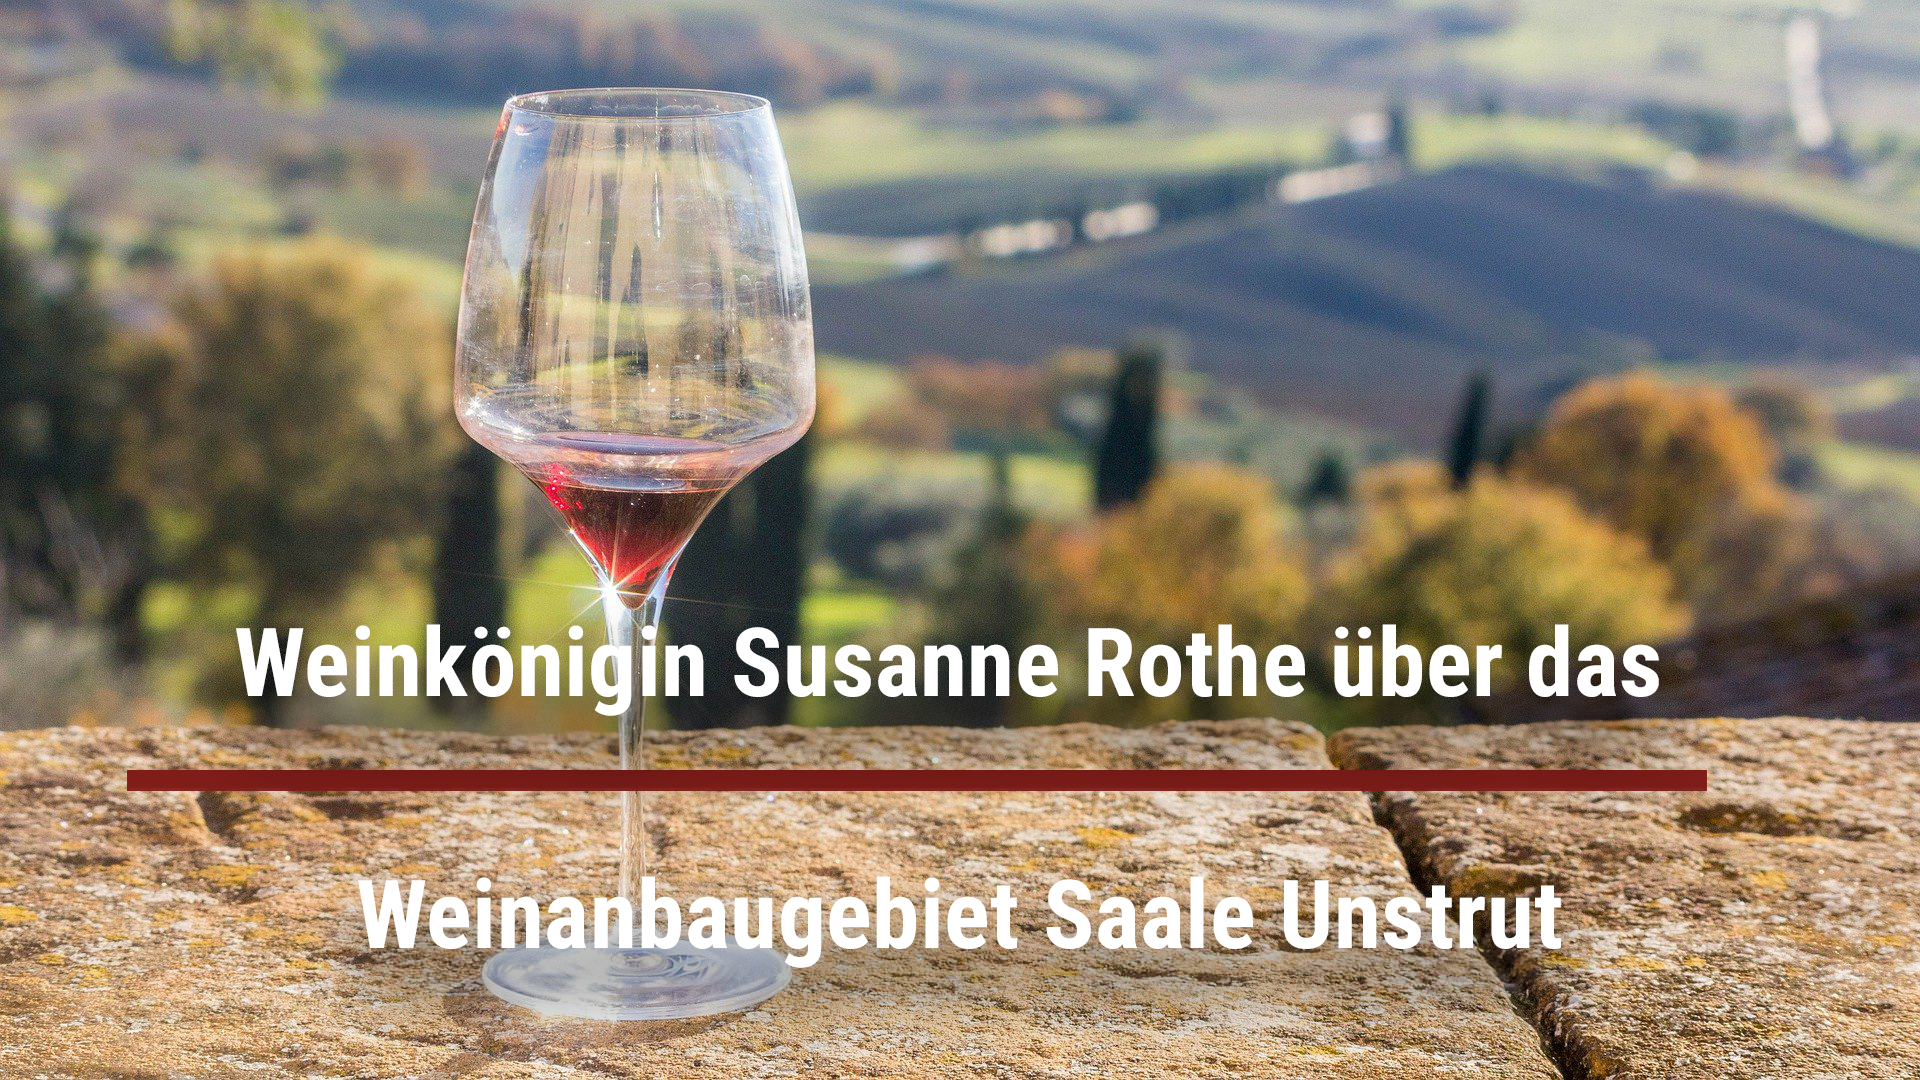 Wine queen Susanne Rothe on the Saale Unstrut wine-growing region